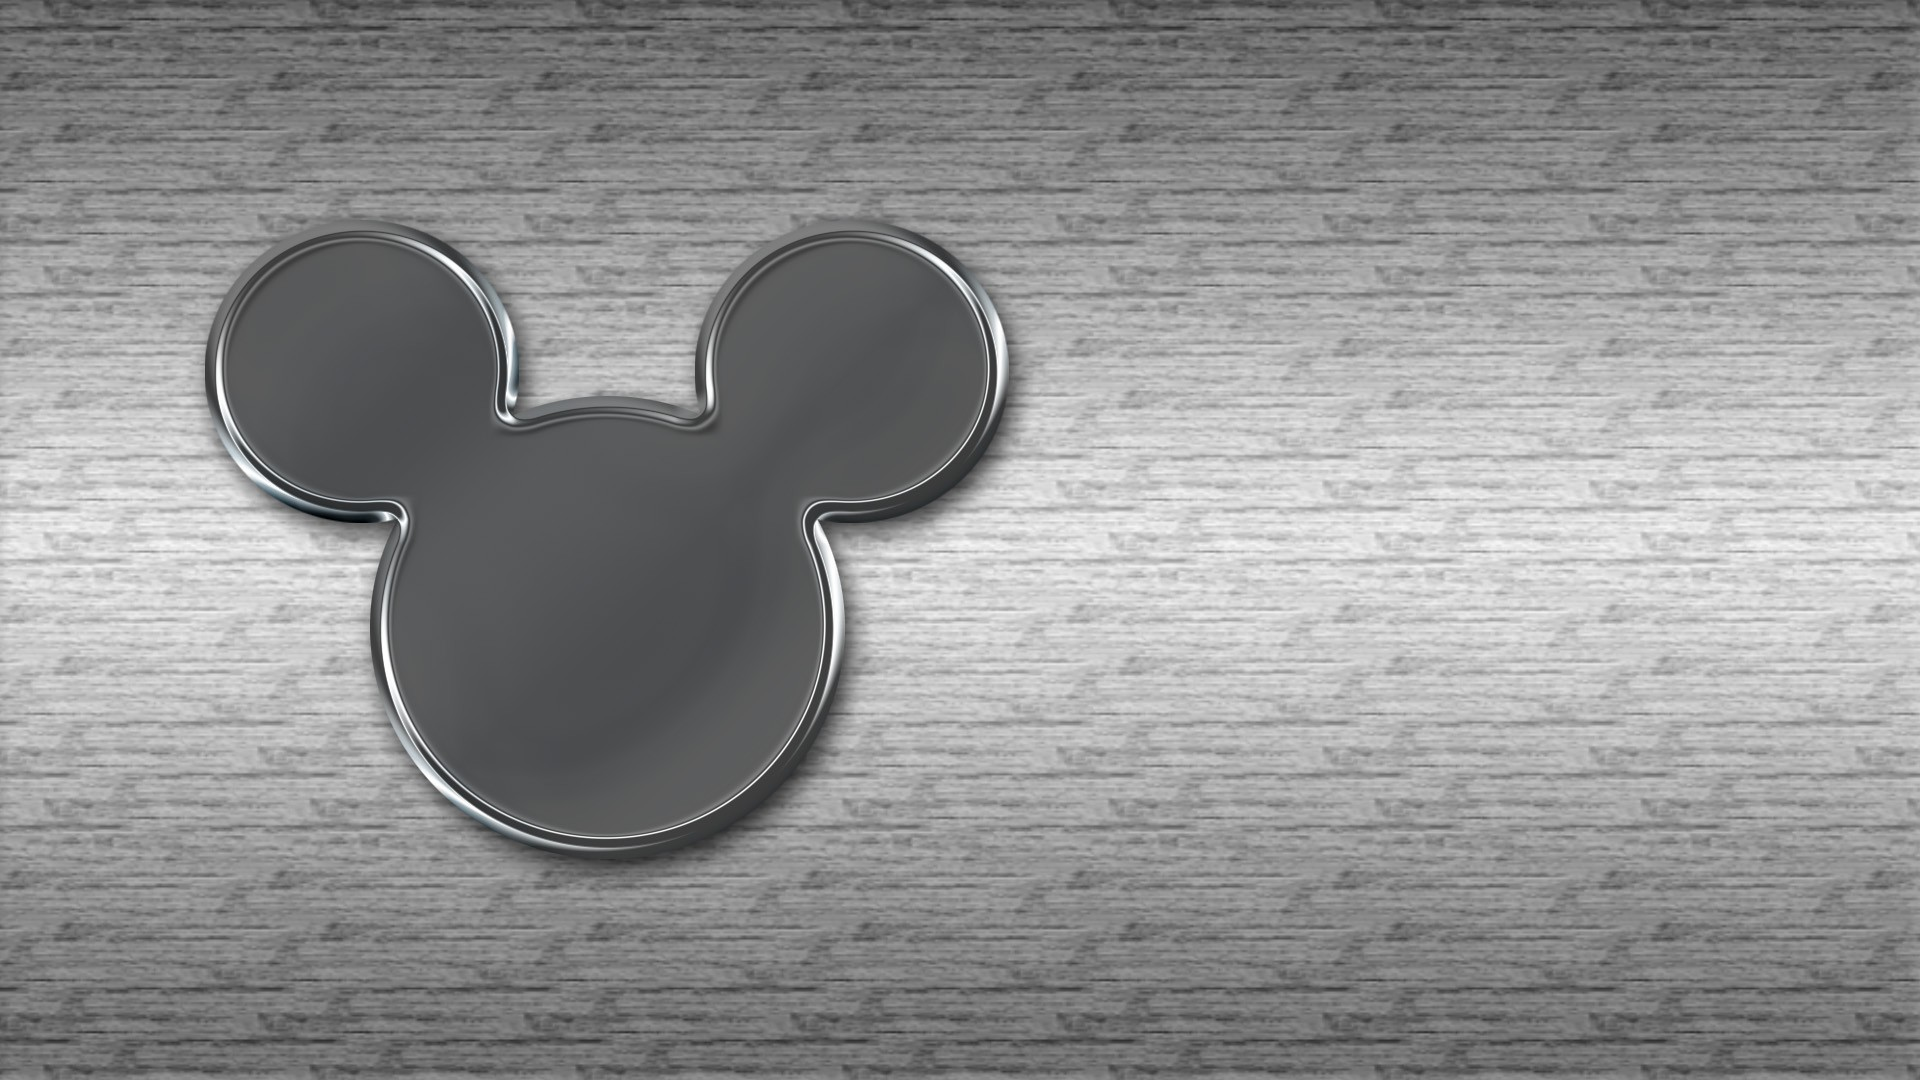 Mickey Mouse Ears Wallpaper